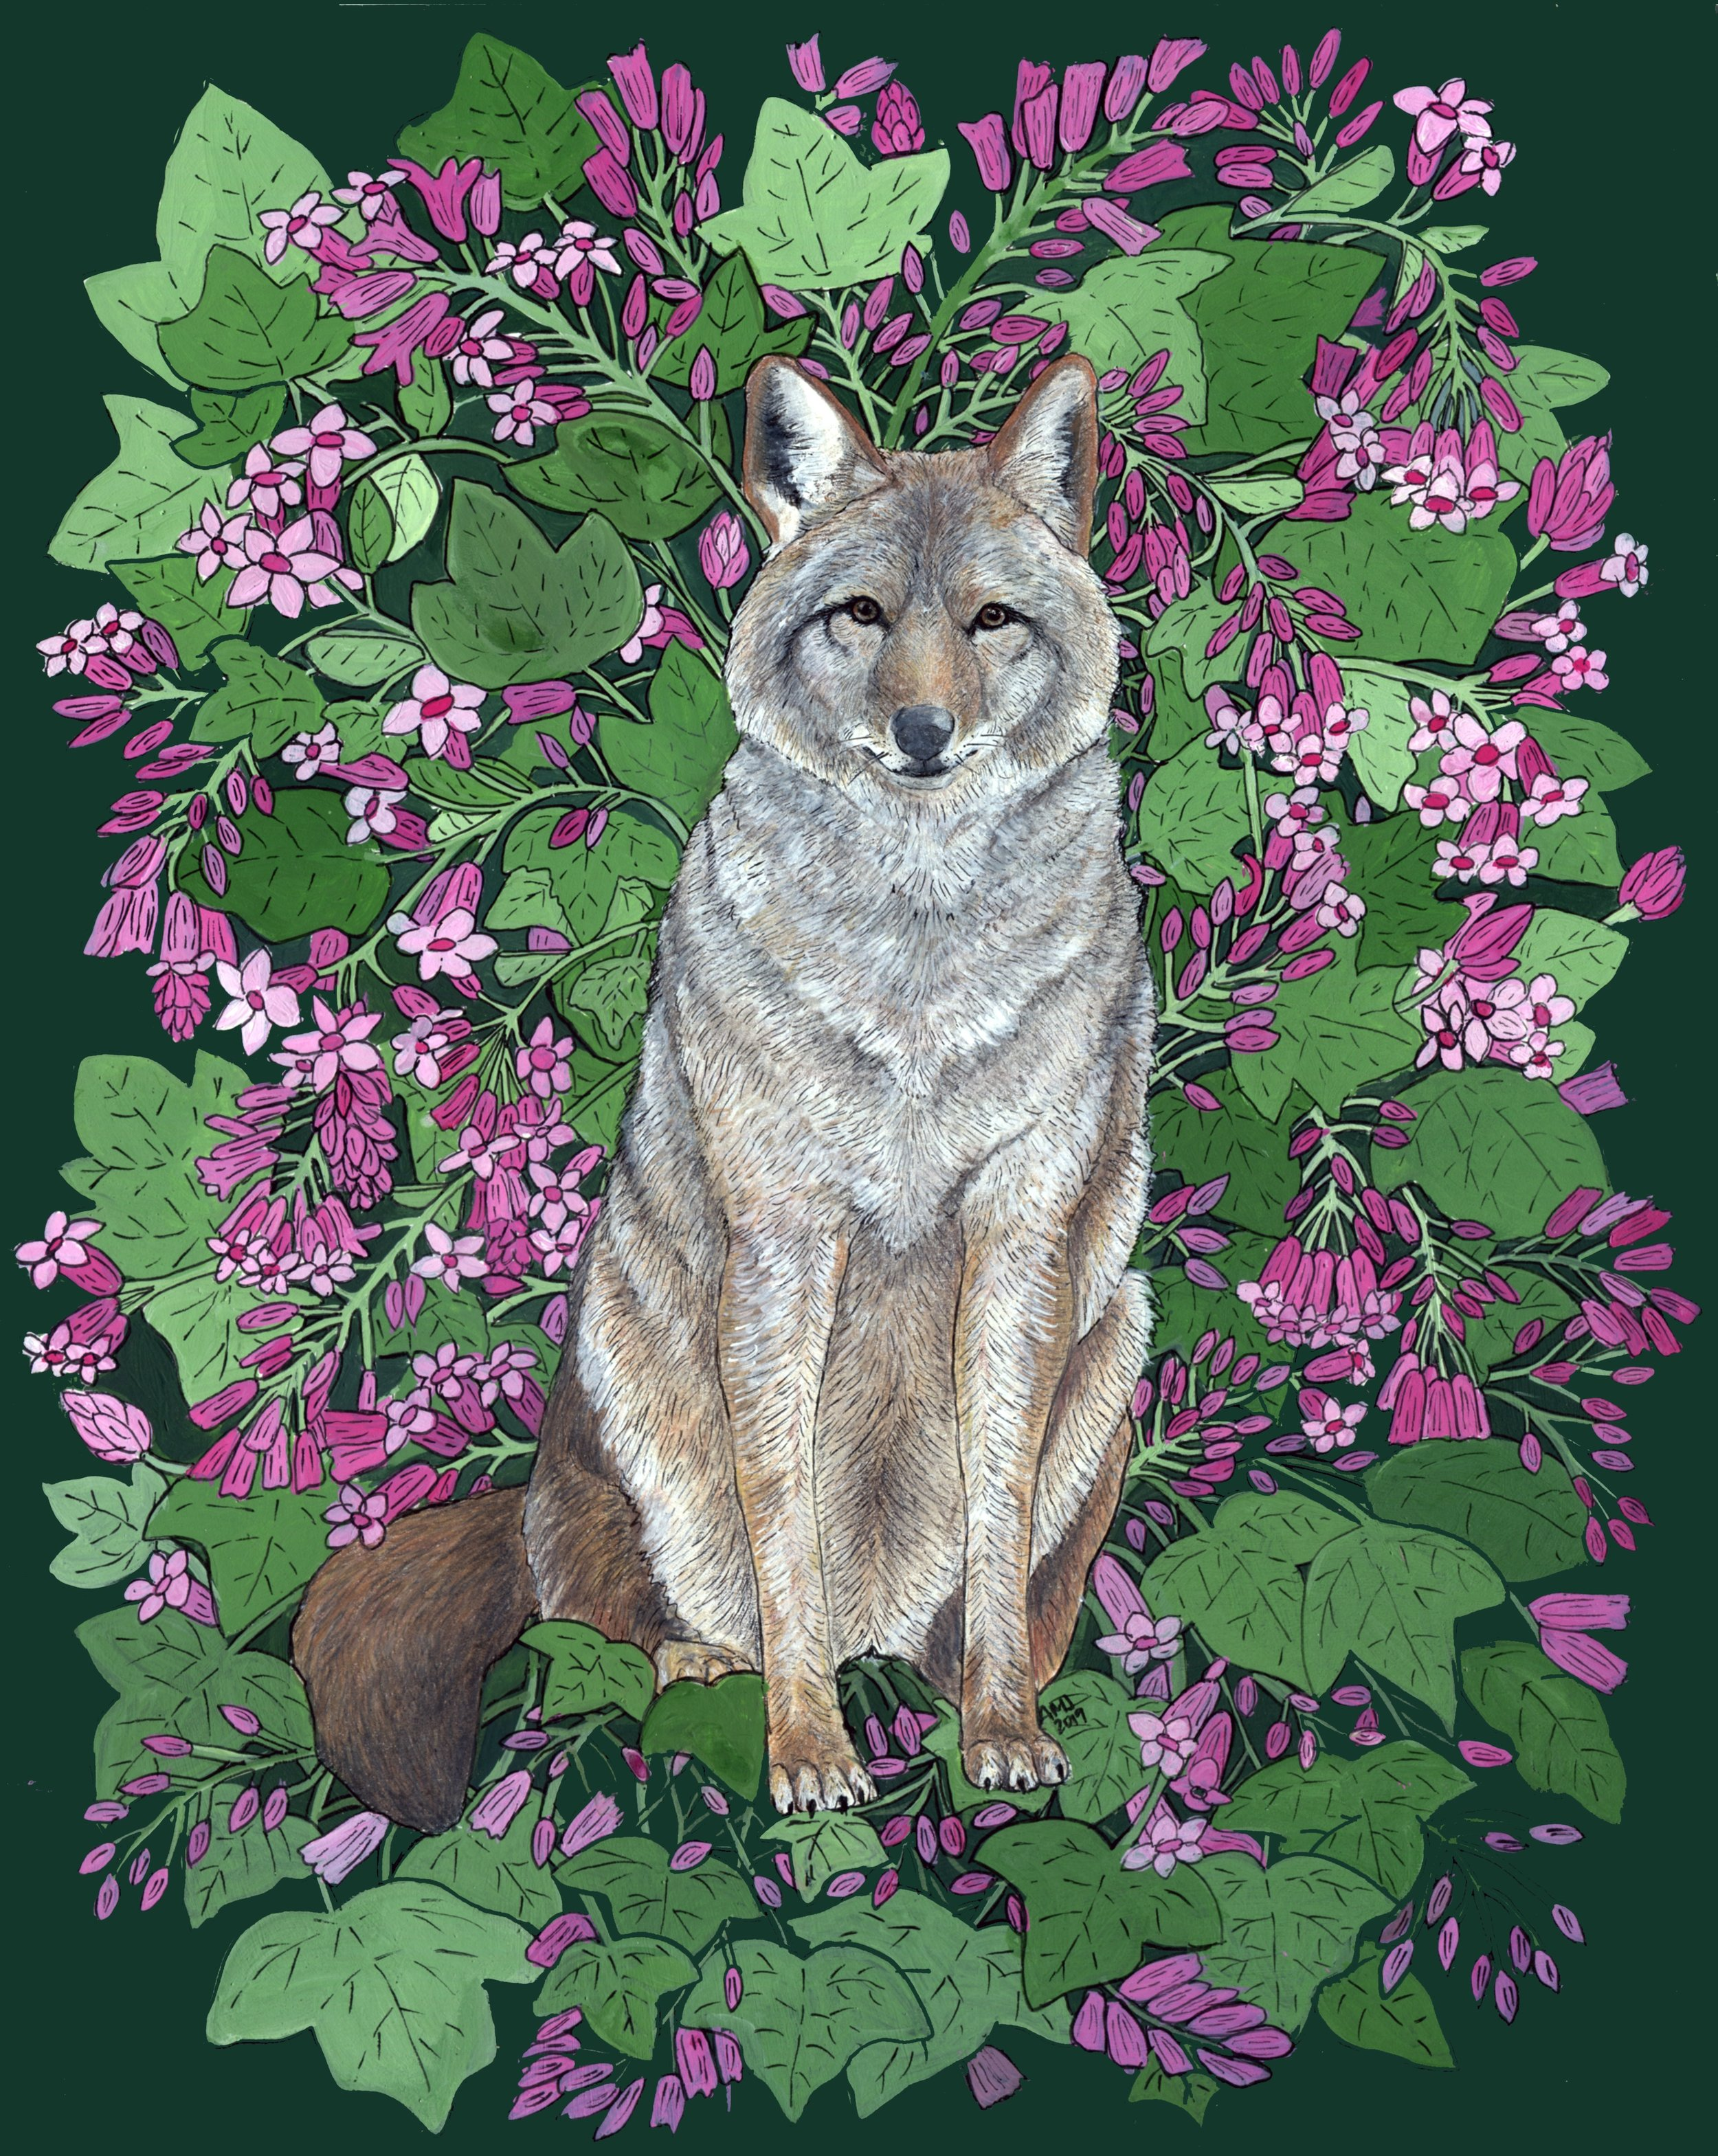 Coyote with Flowering Red Currant